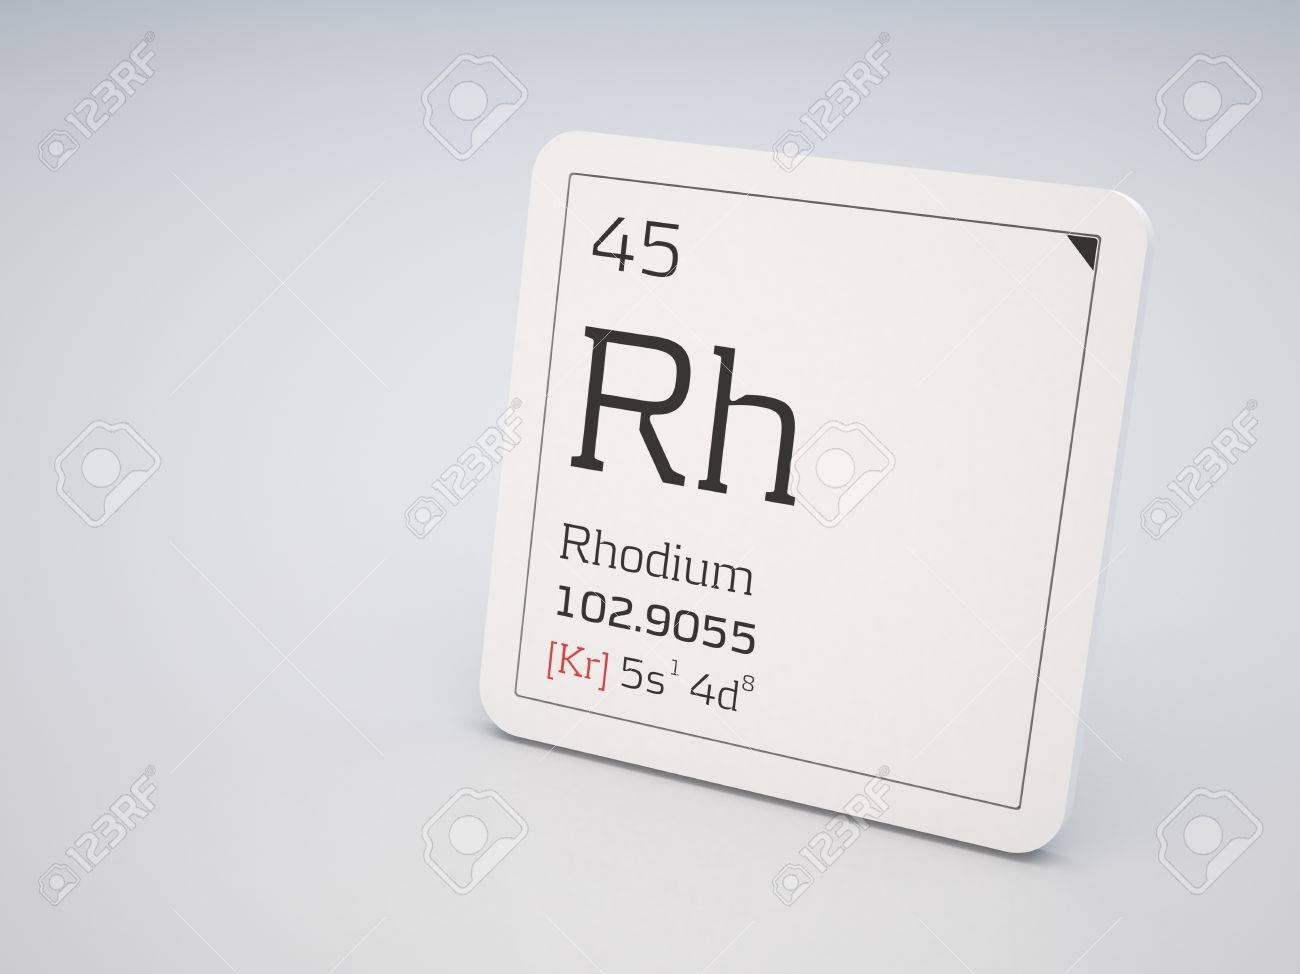 Rh on periodic table image collections periodic table images rh on periodic table gallery periodic table images rh on periodic table image collections periodic table gamestrikefo Images